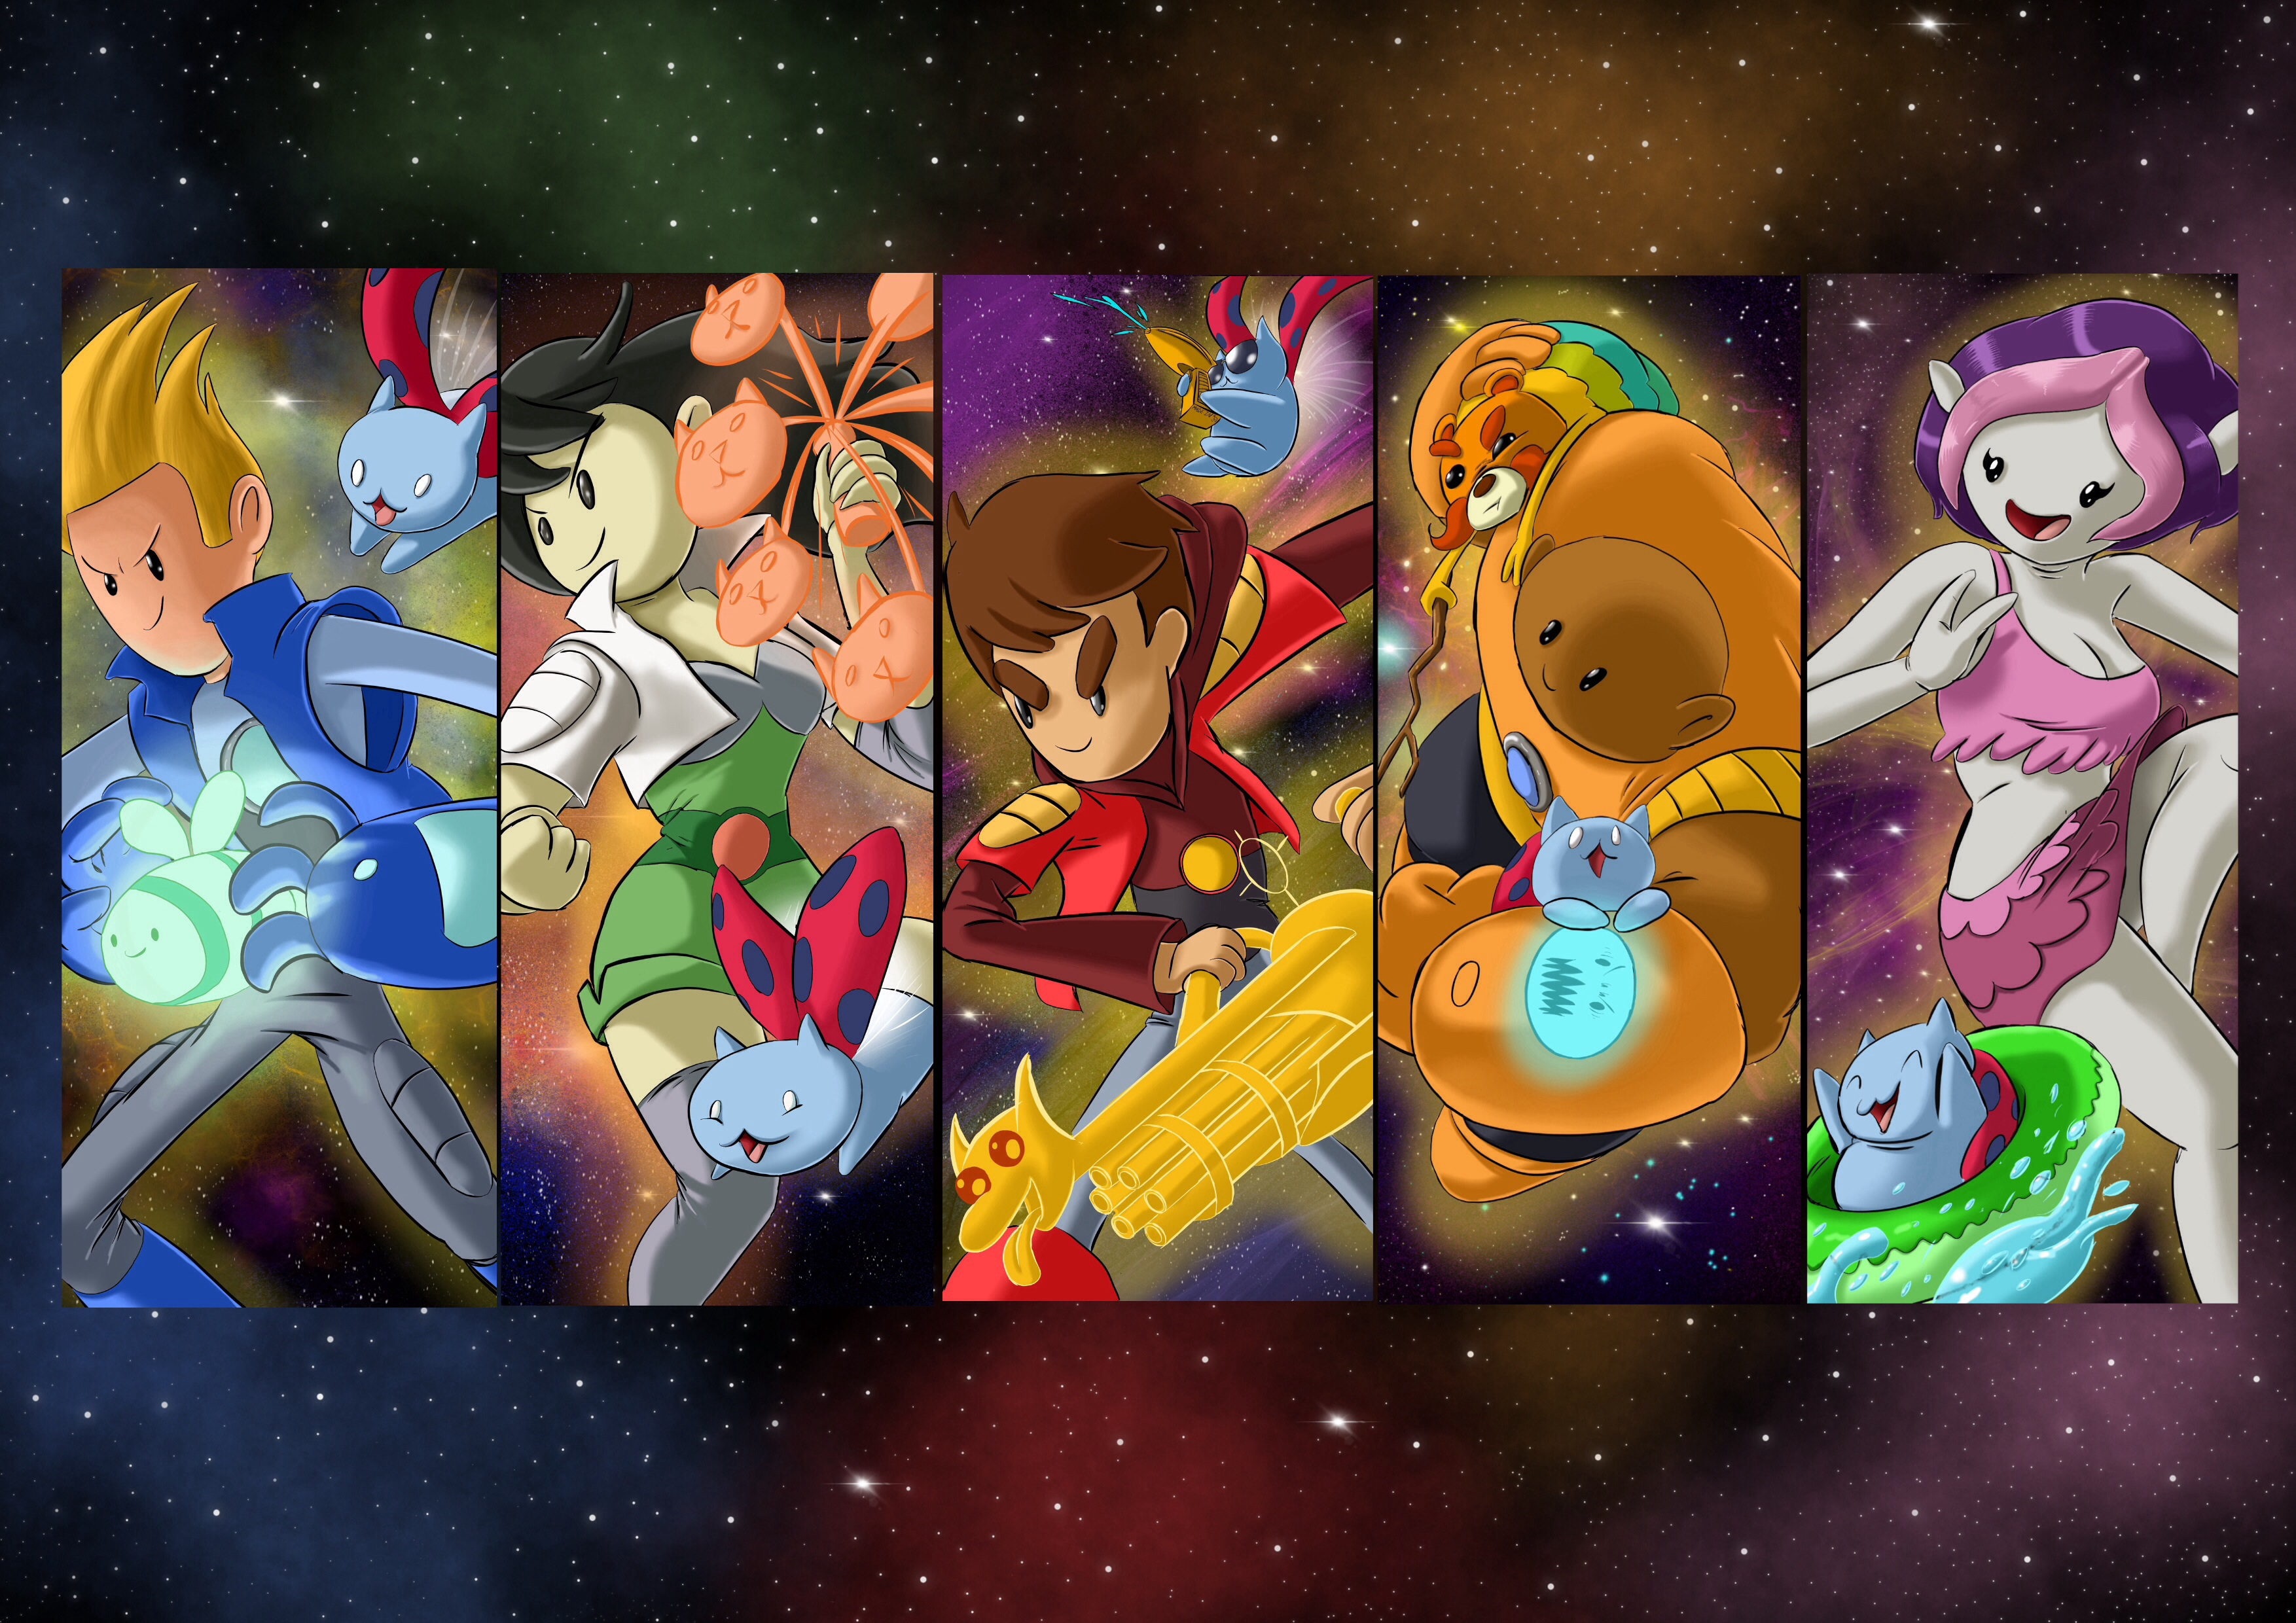 The Bravest Warriors All Together Now By Semajz Cartoon Hangover My Little Wallpaper The Wallpaper Source That Credits Artists